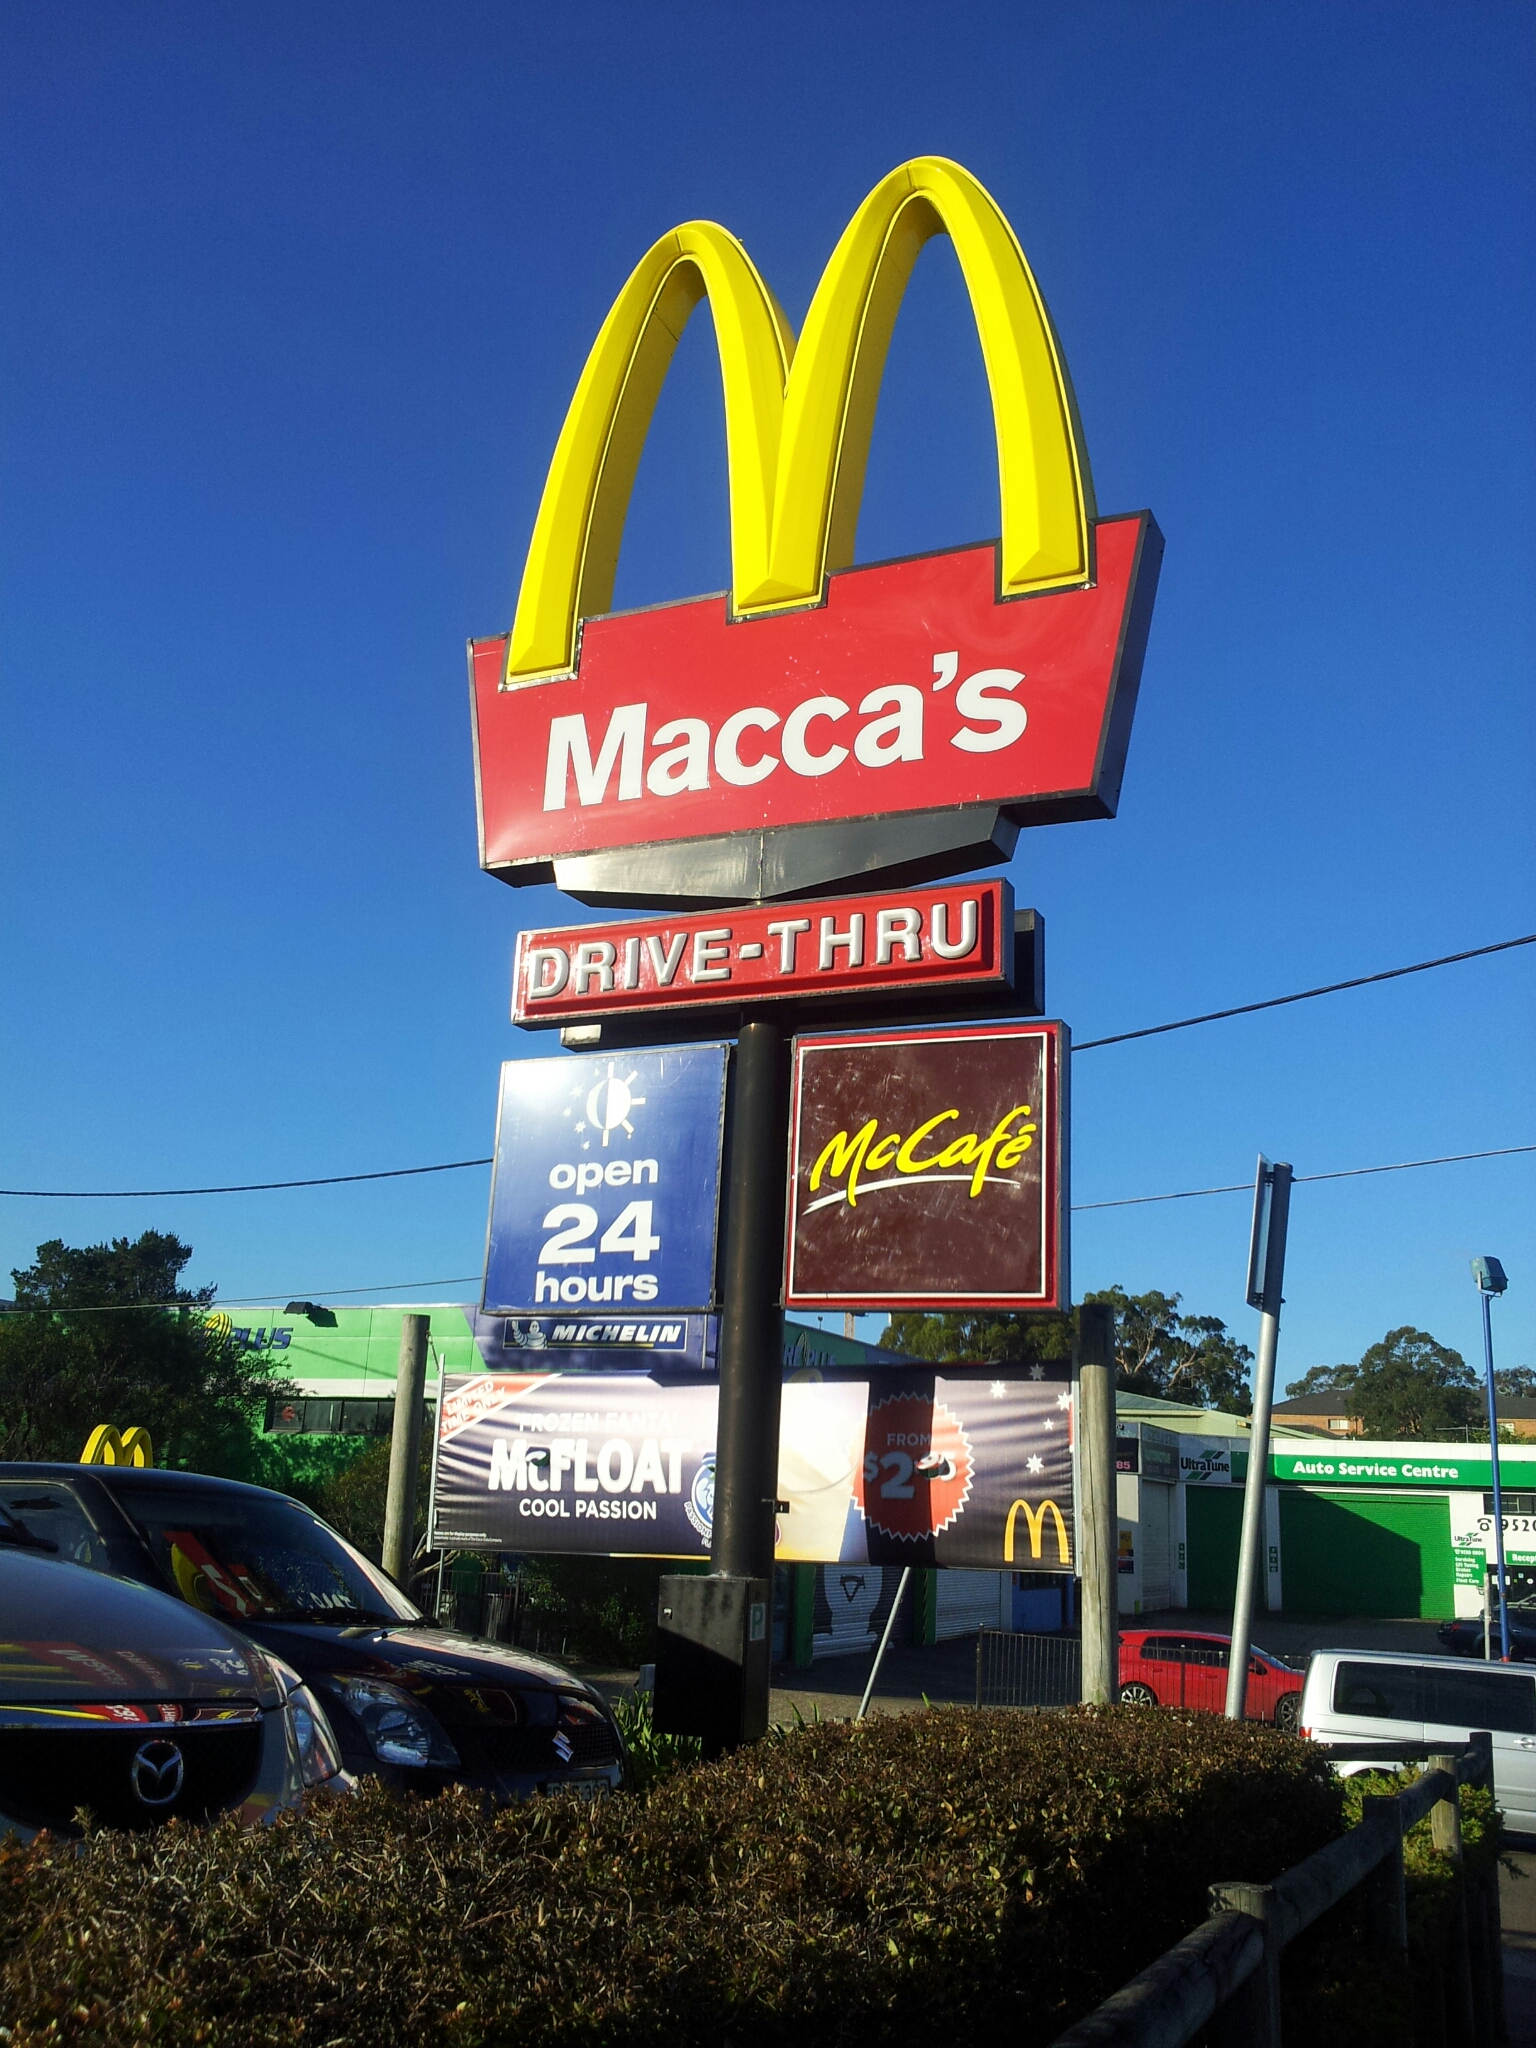 File:Maccas.jpg - Wikimedia Commons